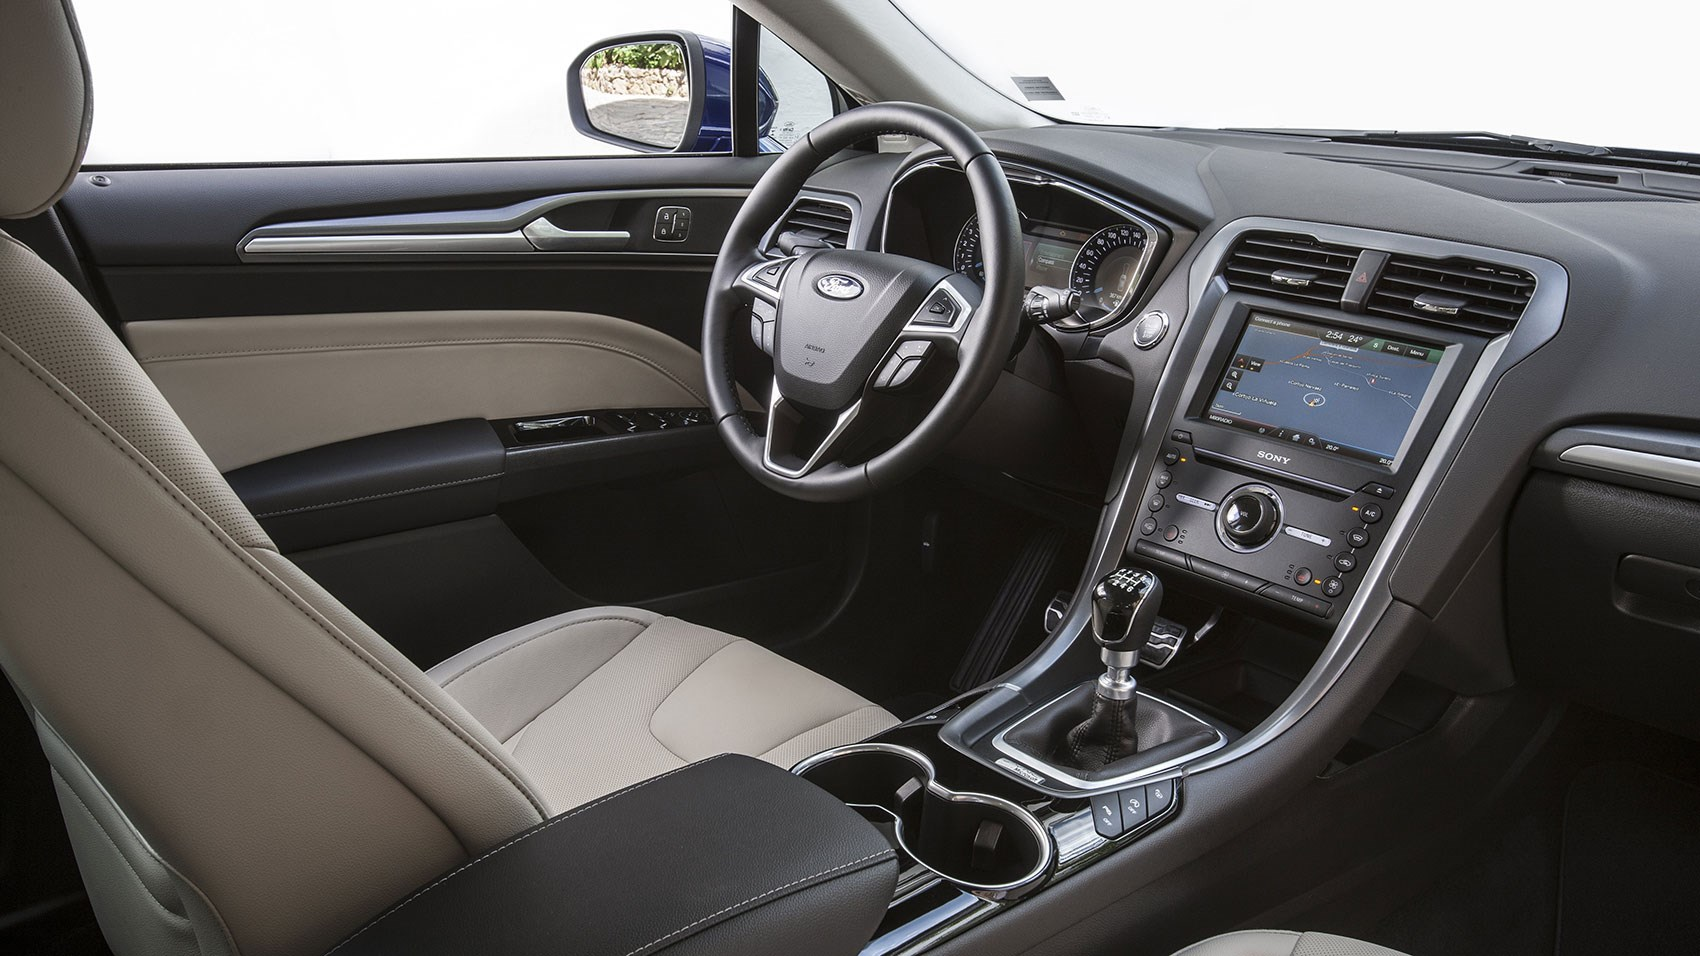 Ford Mondeo cabin